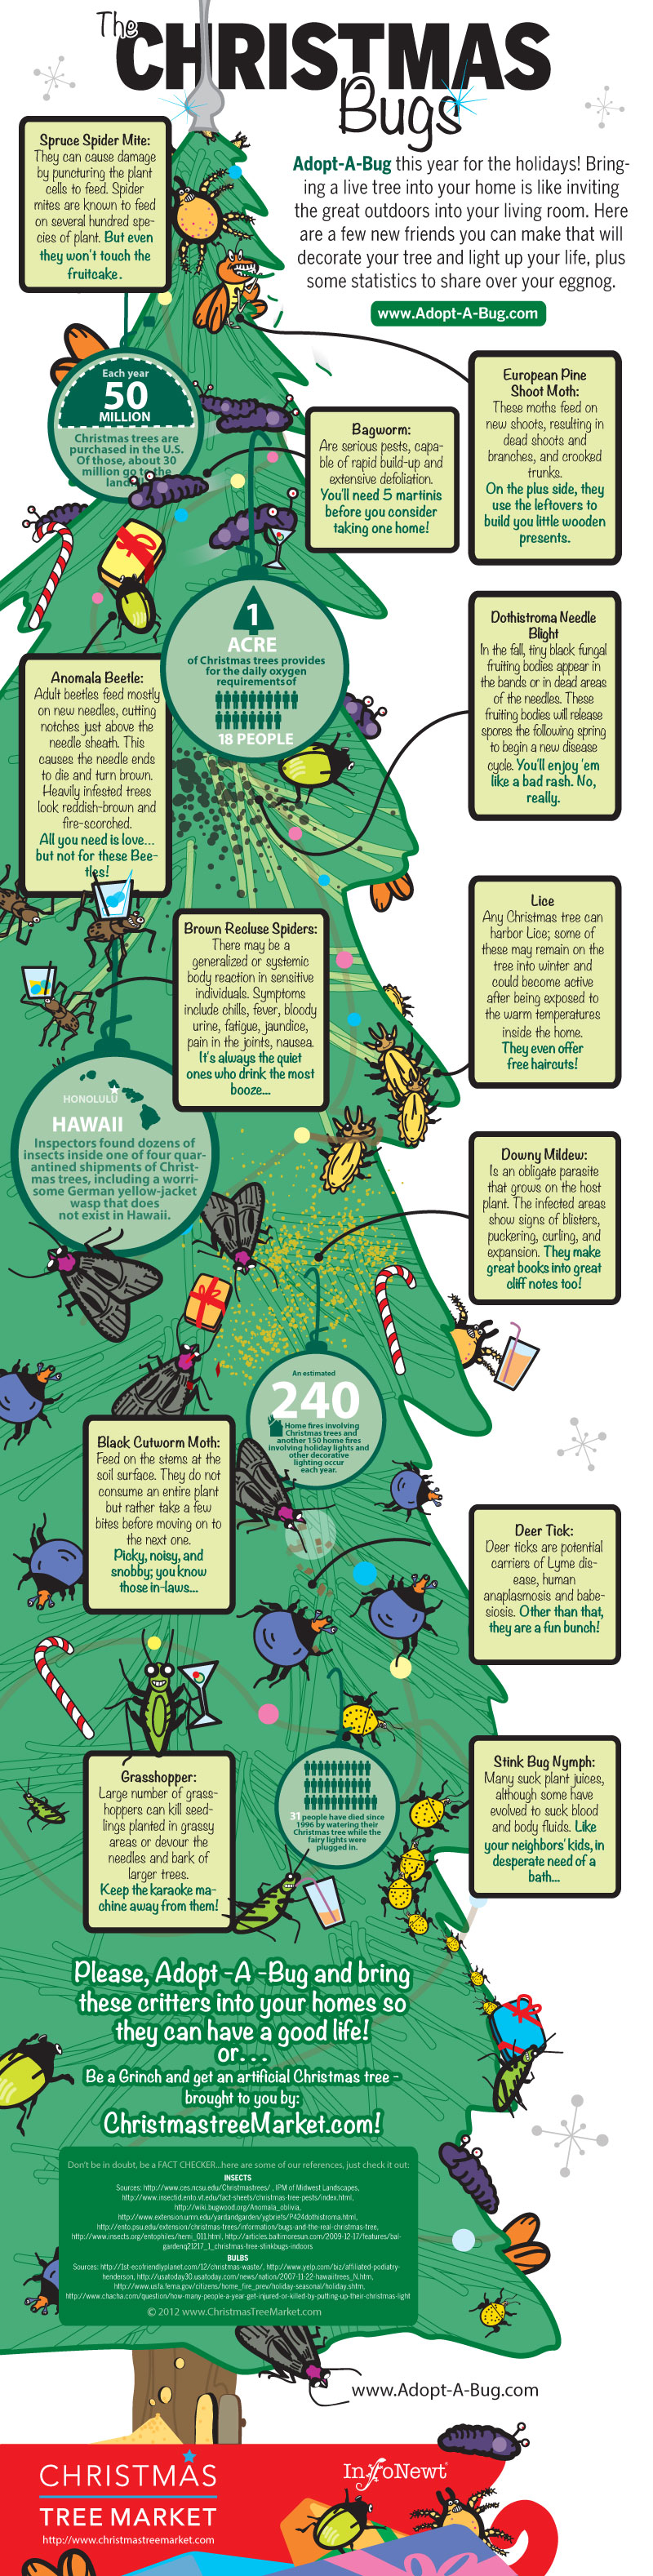 Christmas Tree Bugs-Infographic